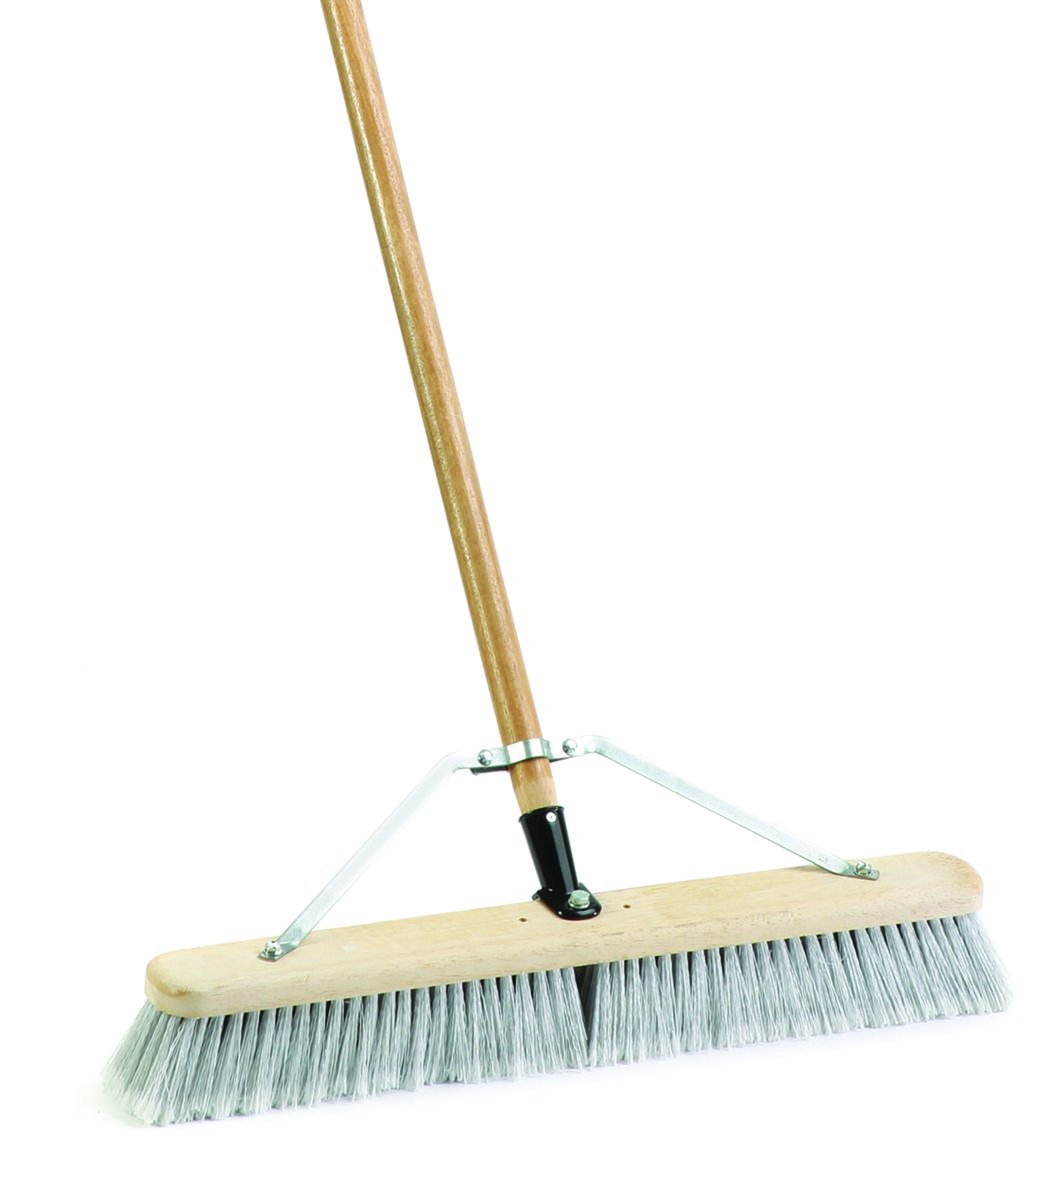 MintCraft Pro 1425AJOR Push Broom with Brace 24-Inch Smooth